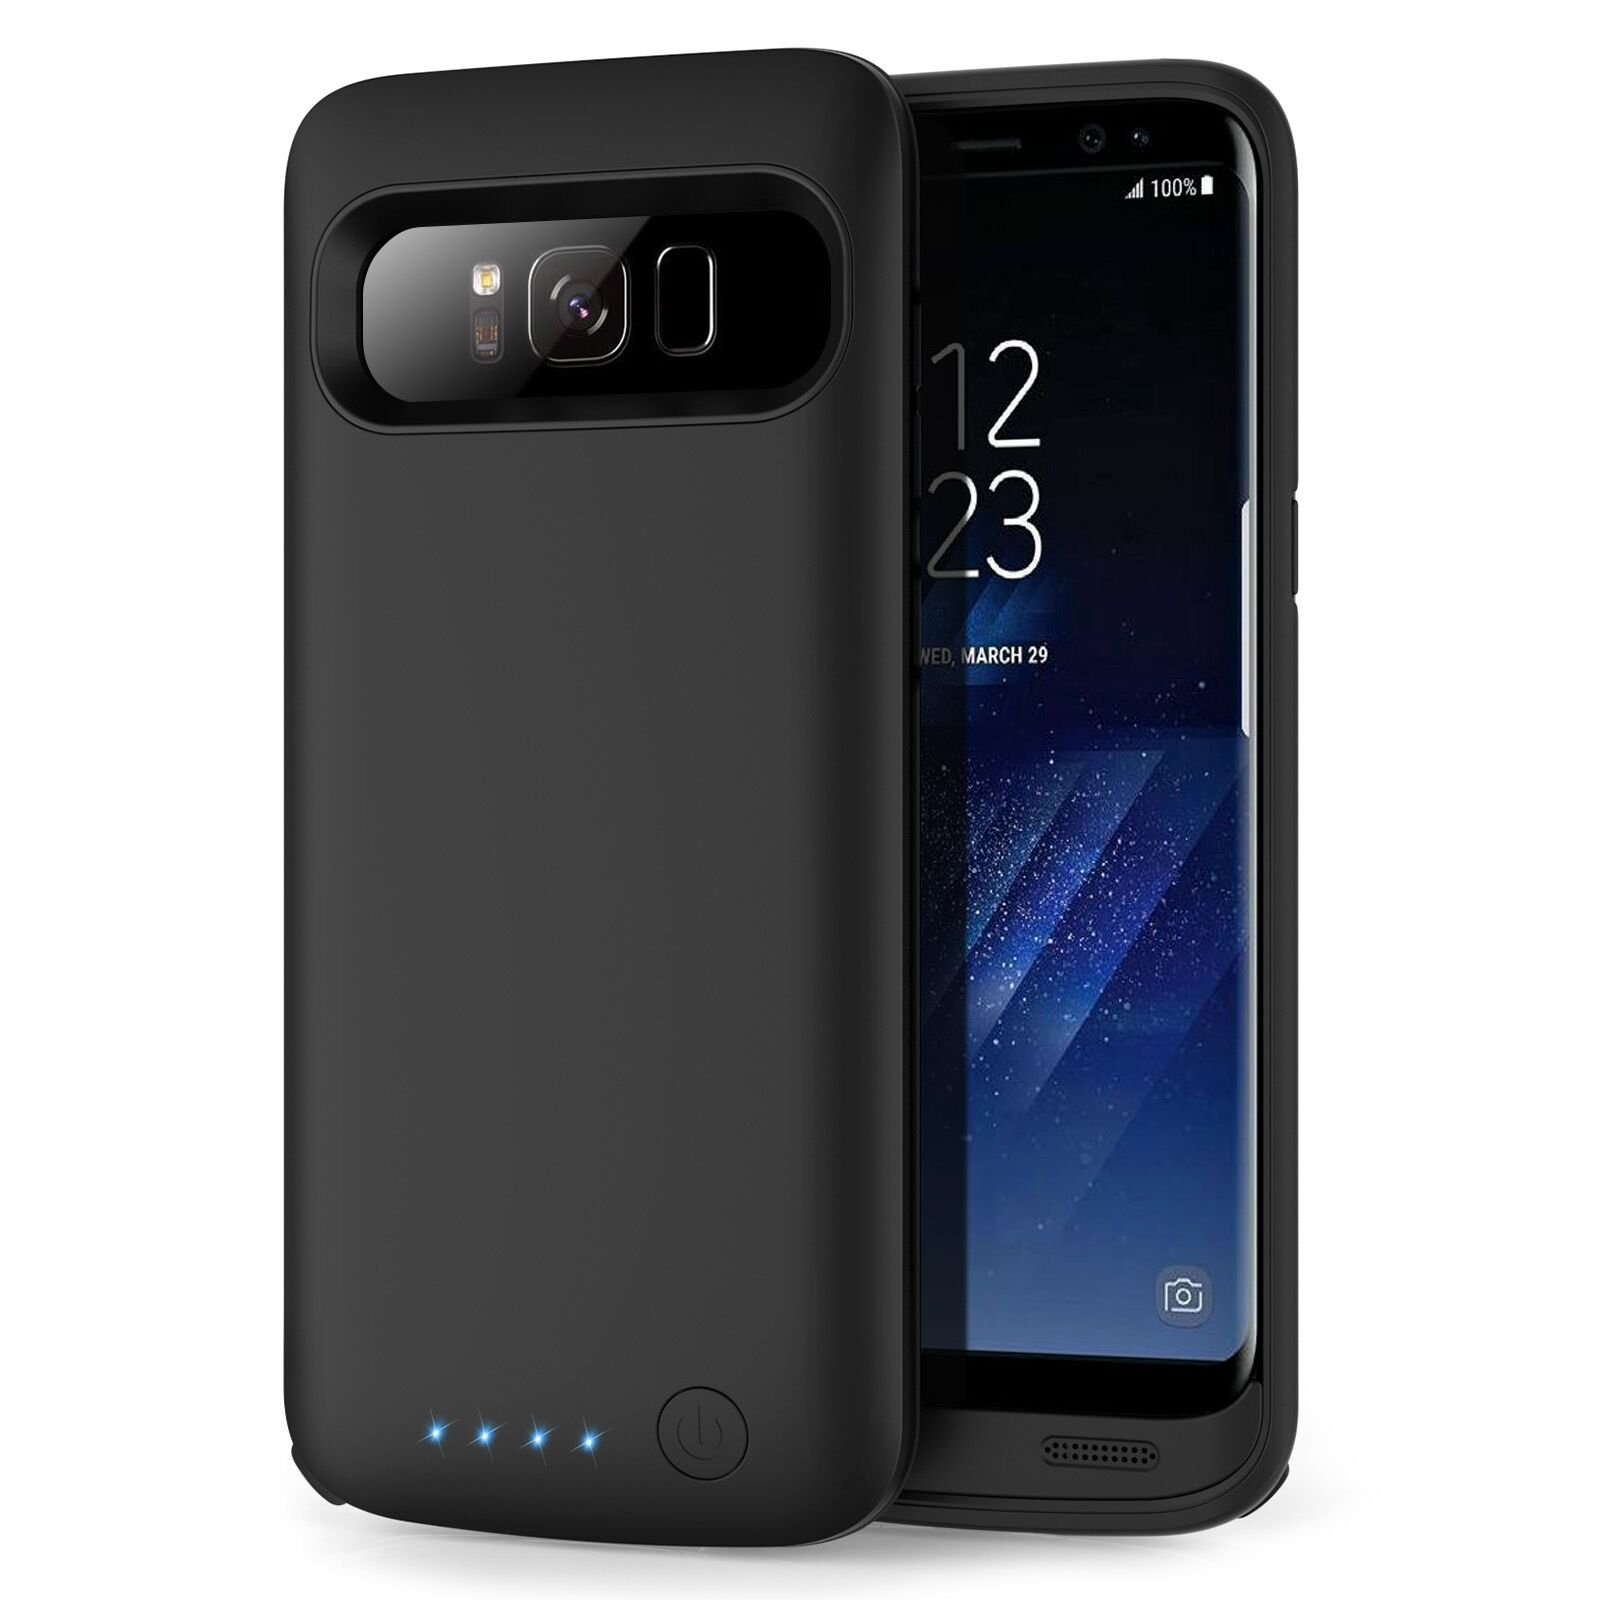 Galaxy S8 Plus Battery Case 6500mah,Rechargeable Charging CaseforSamsung GalaxyS8 Plus Backup Power Case Samsung S8+ Battery Cover-Black by Pxwaxpy (Image #1)